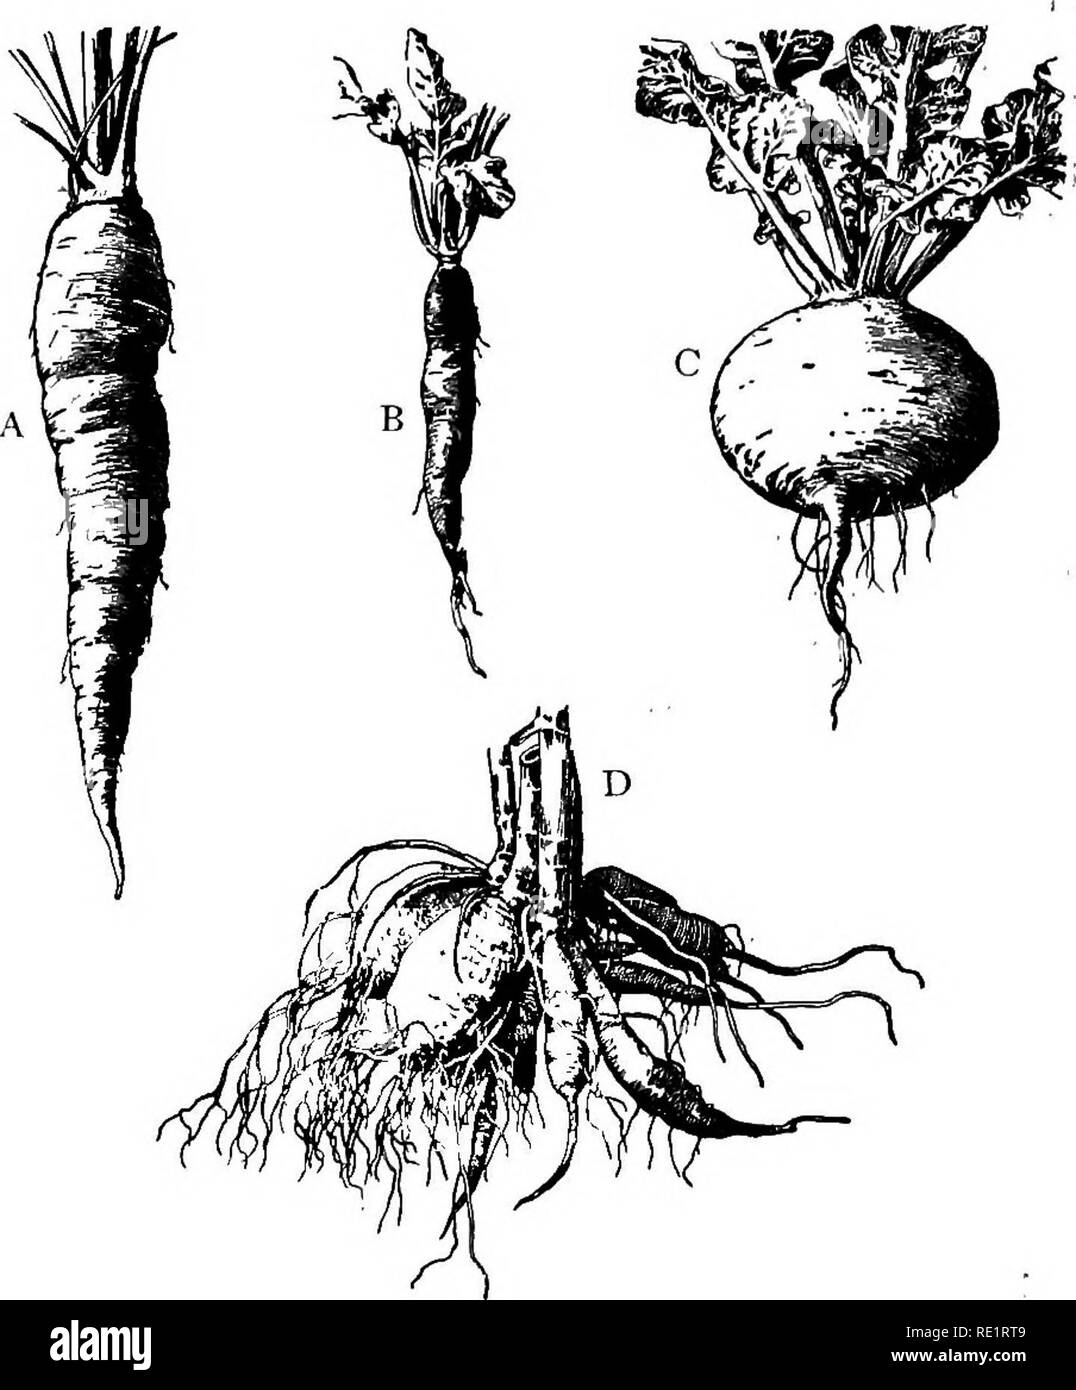 . A manual of Indian botany. Botany. i6 MORPHOLOGY leaves, or other parts of plants. Such roots are said to be FALSE or adventitious as opposed to true or RADICULAR roots. One of the best examples bf.felse. Fig. 14.—Tap-roots A, Carrot or Gajar, and B, Radish or Moola (fusiform). 0, Turnip or Salg;um (napiform). o, Tuberous root. roots is afforded by the Banyan tree, the branches of which produce roots which for some time remain suspended in the air till they reach the ground and penetrate the soil; kia (fig. 15) is another common example. The leaves of pathar-kucha or Bryor. Please note that  - Stock Image